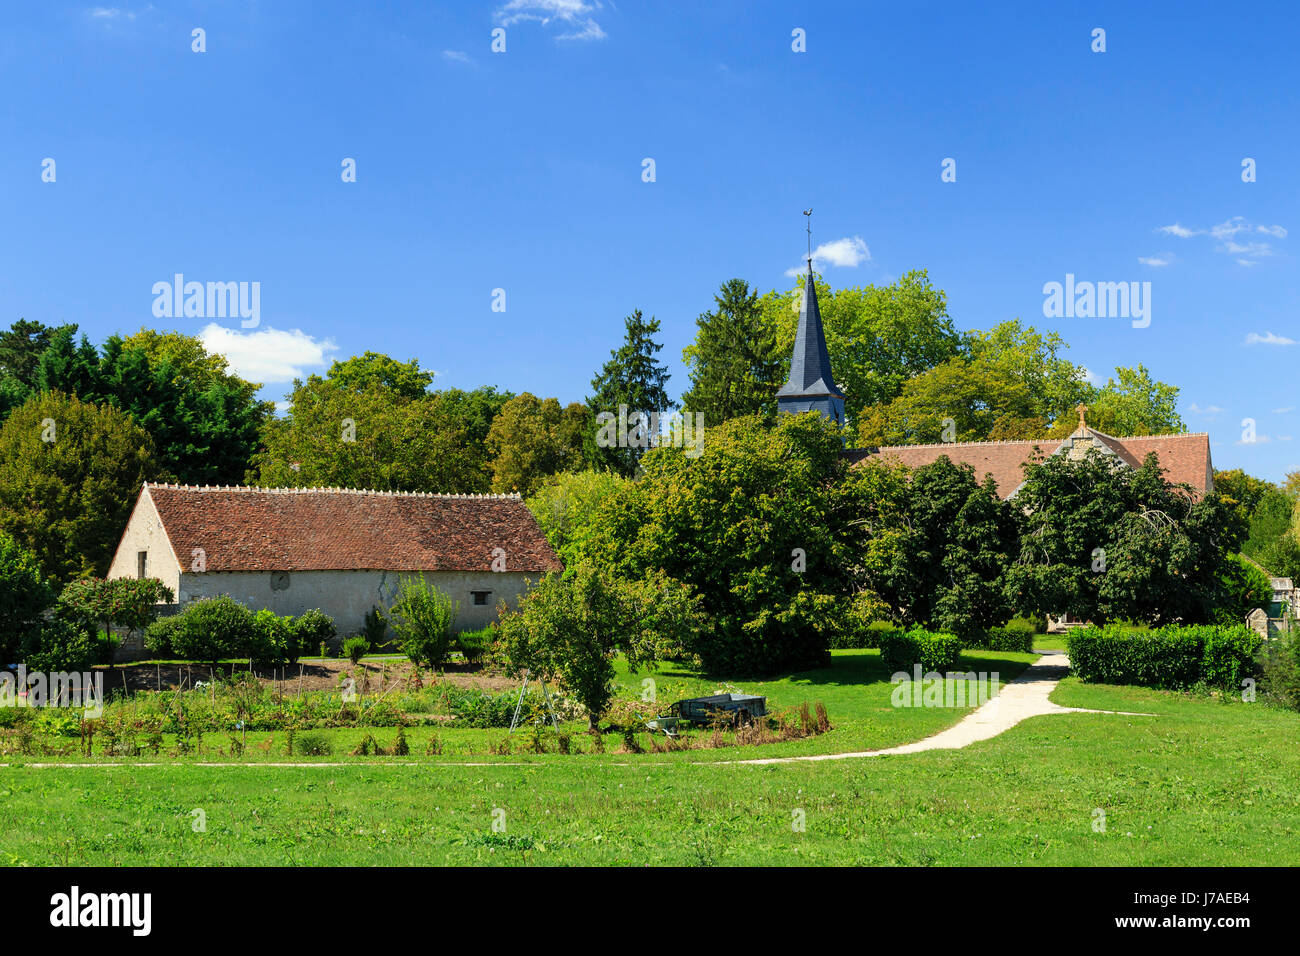 France, Cher, Farges-Allichamps, the center of the village and its church or chapel of the Templars - Stock Image